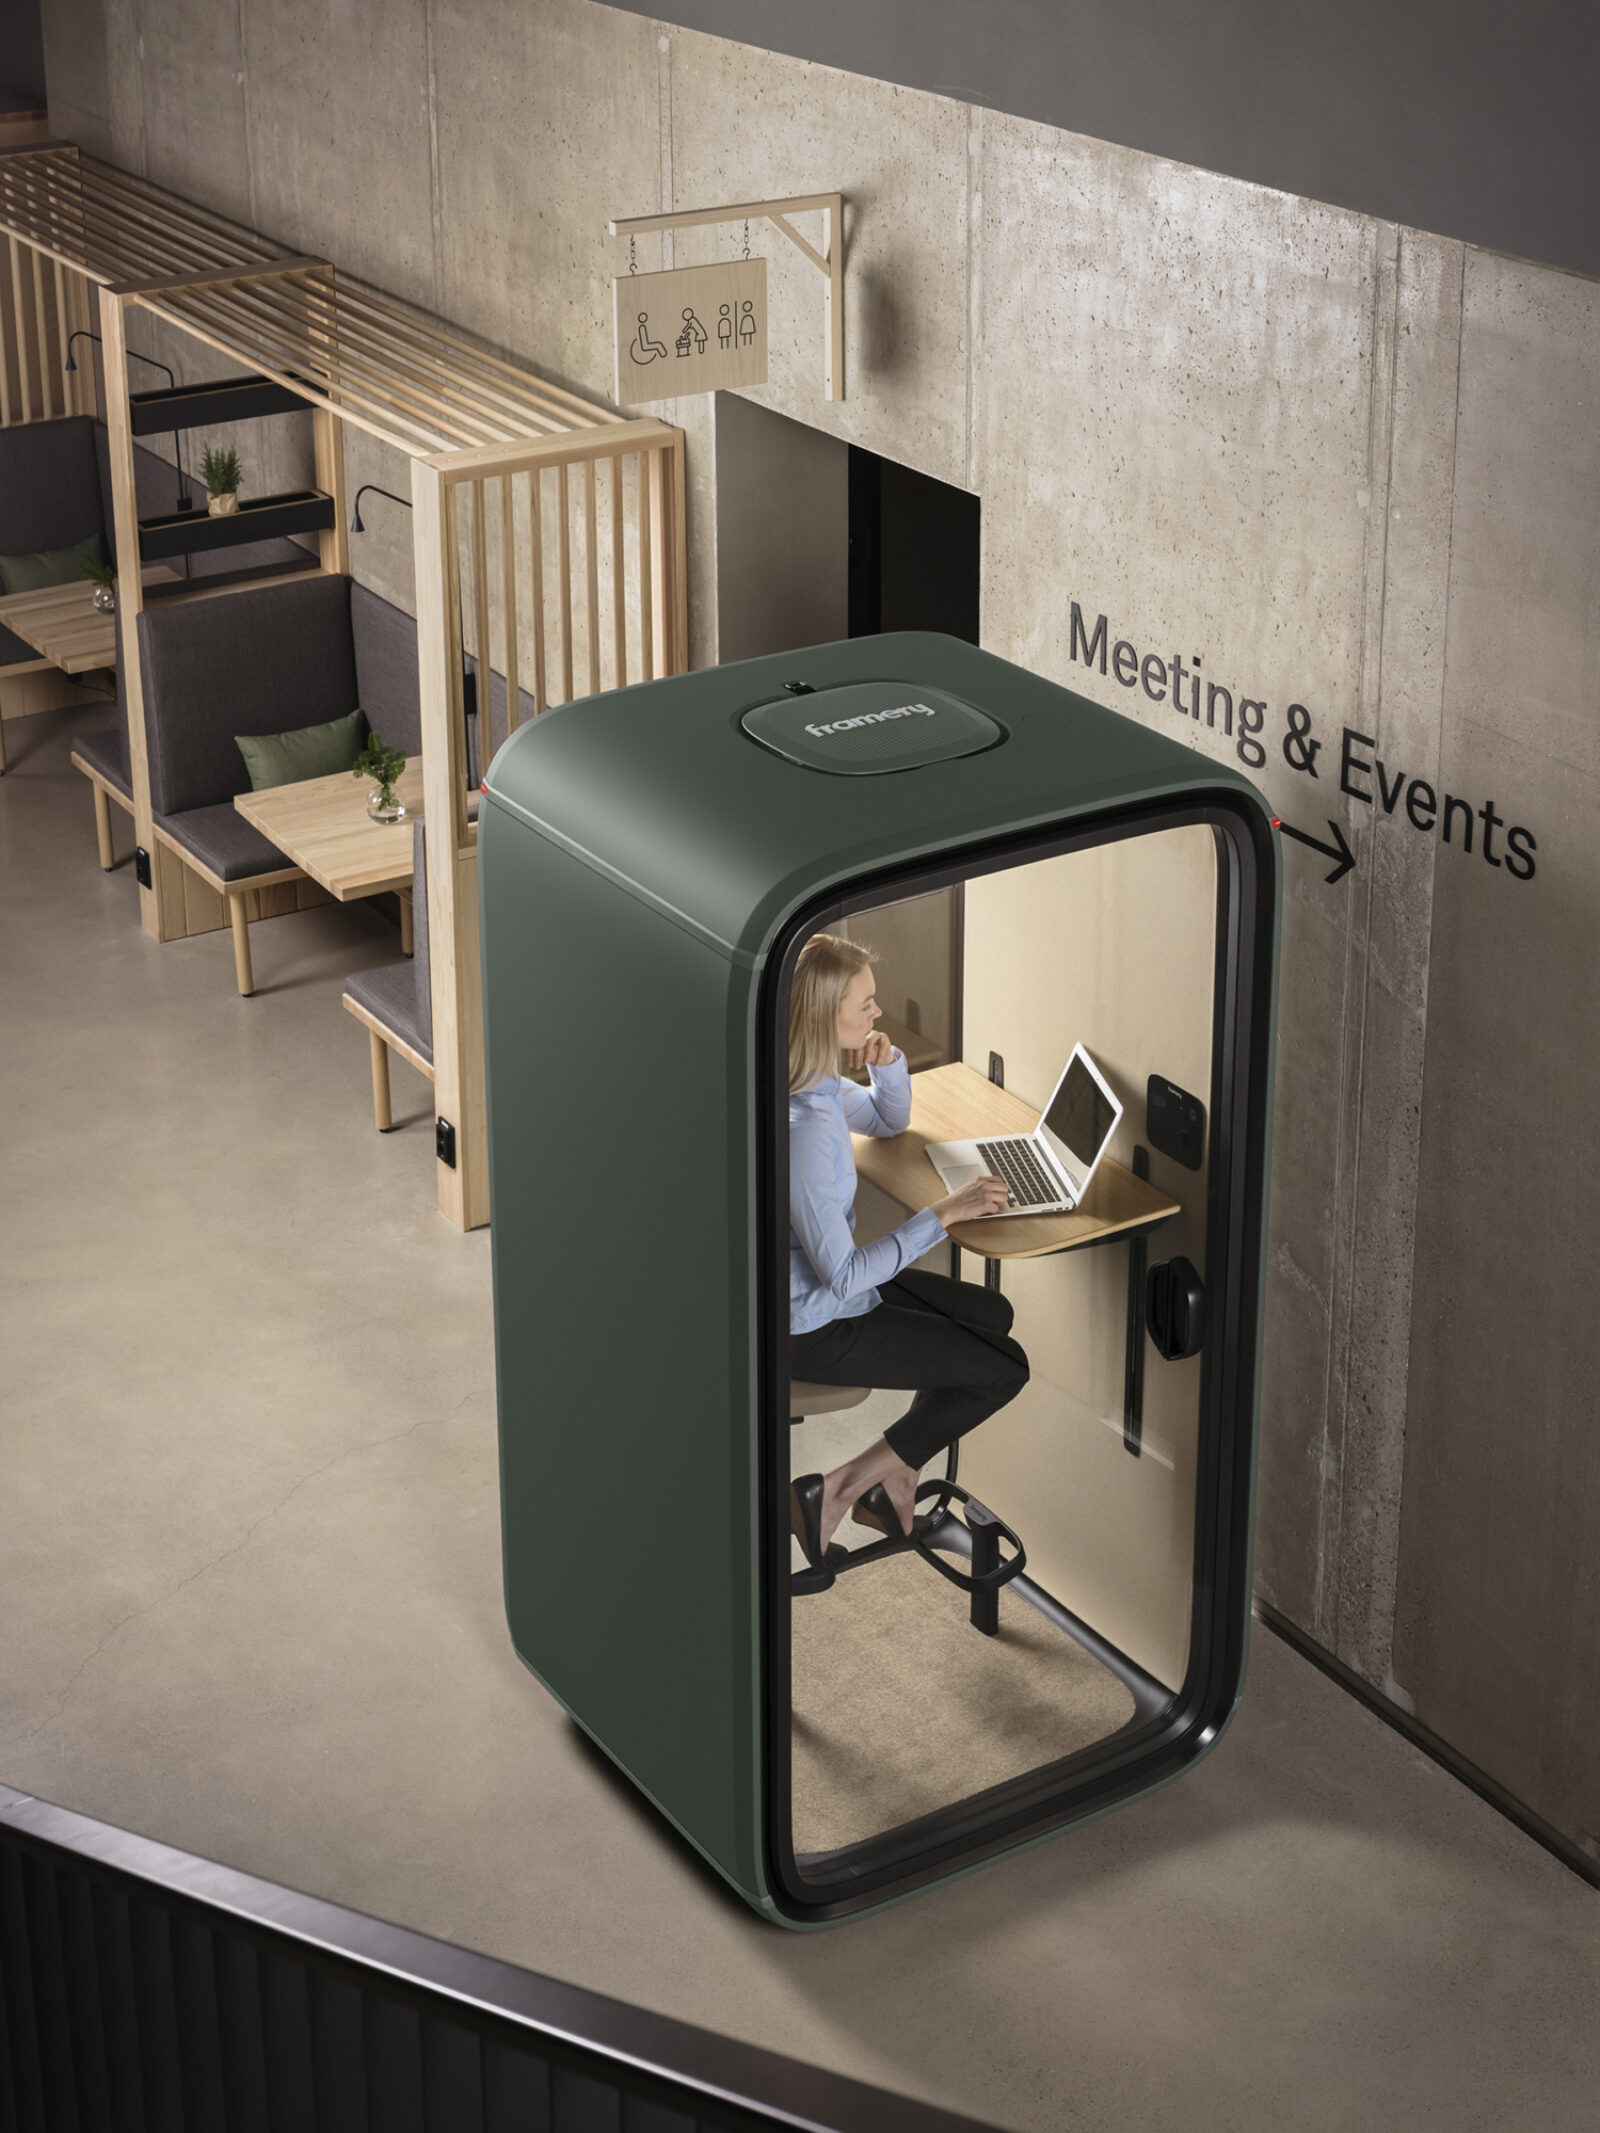 Framery office soundproof phone booth, privacy pod, soundproof booth, solo pod, connected pod vermont providence